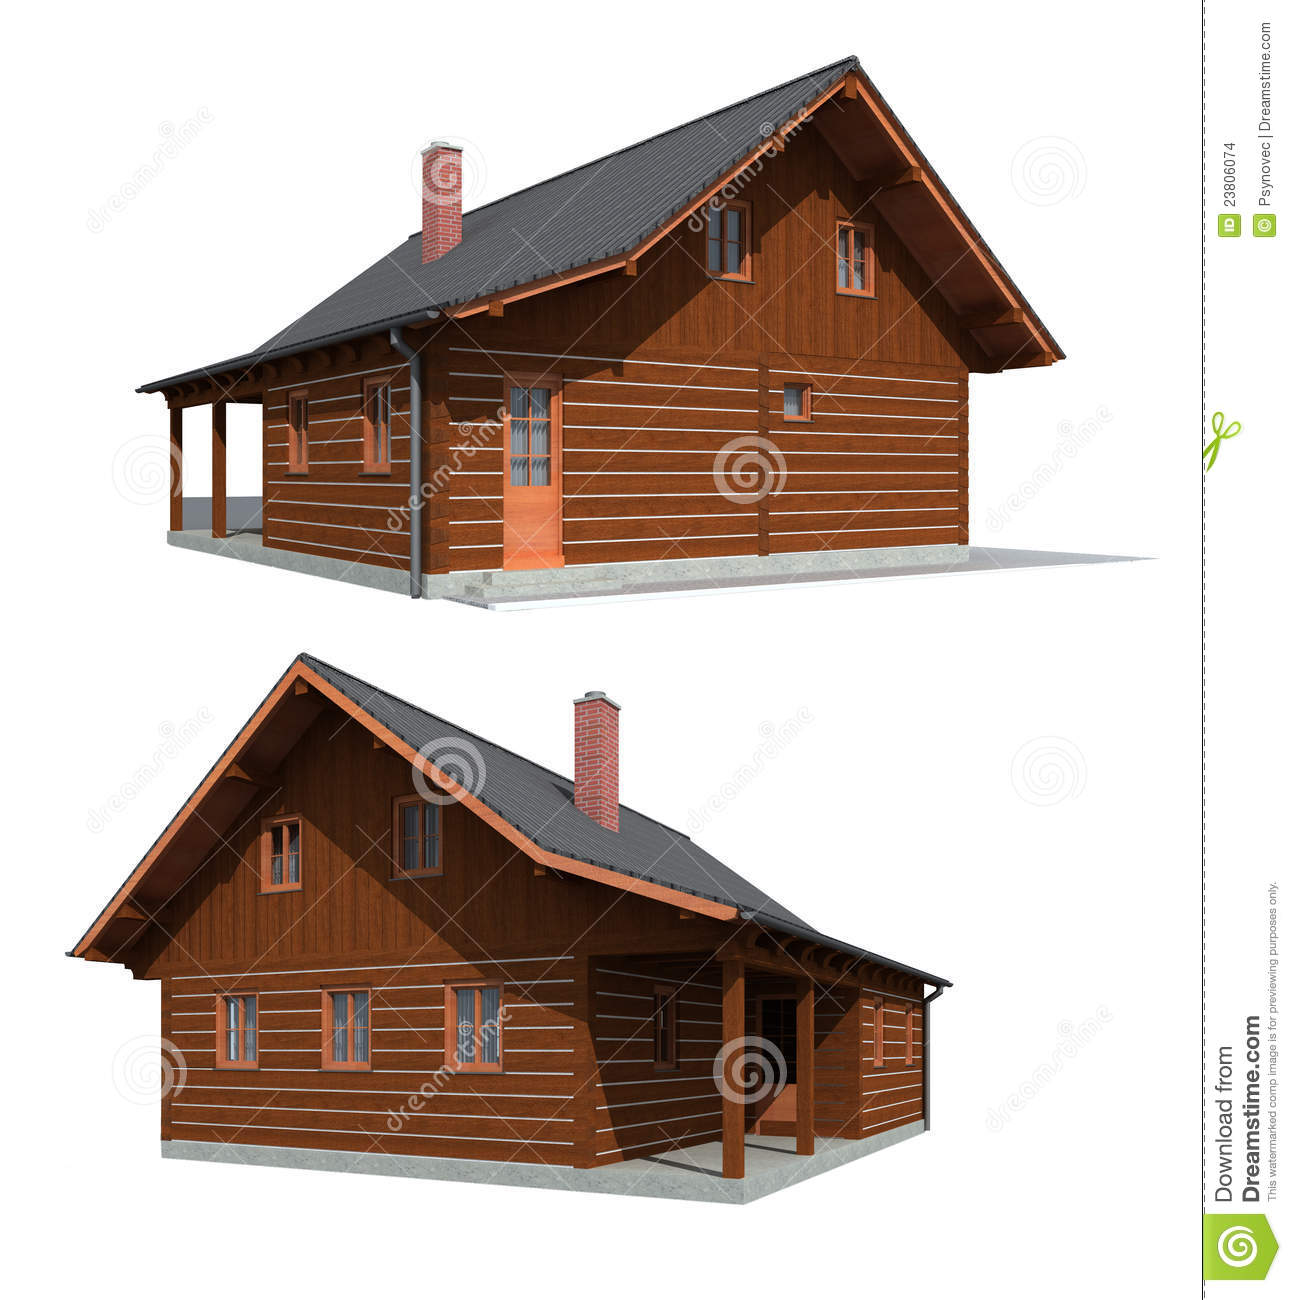 Timber wood house stock images image 23806074 for Wood house images